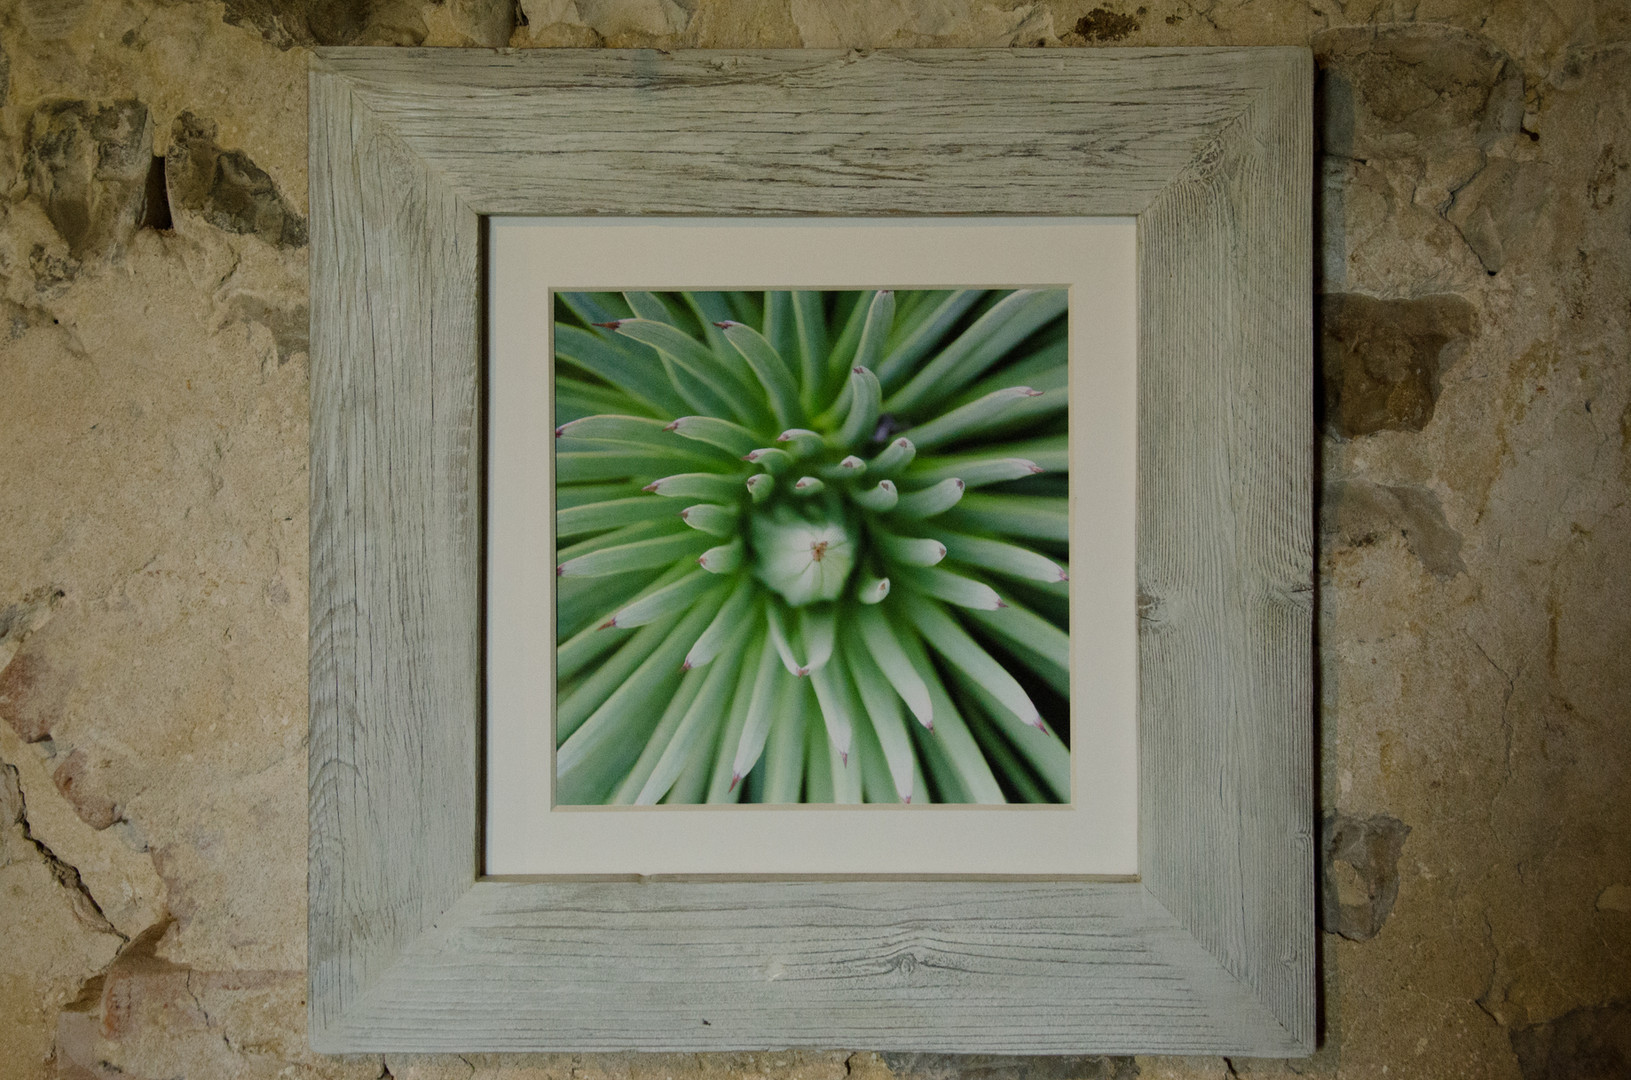 14 Cactus Susanne Paetsch fine art photography